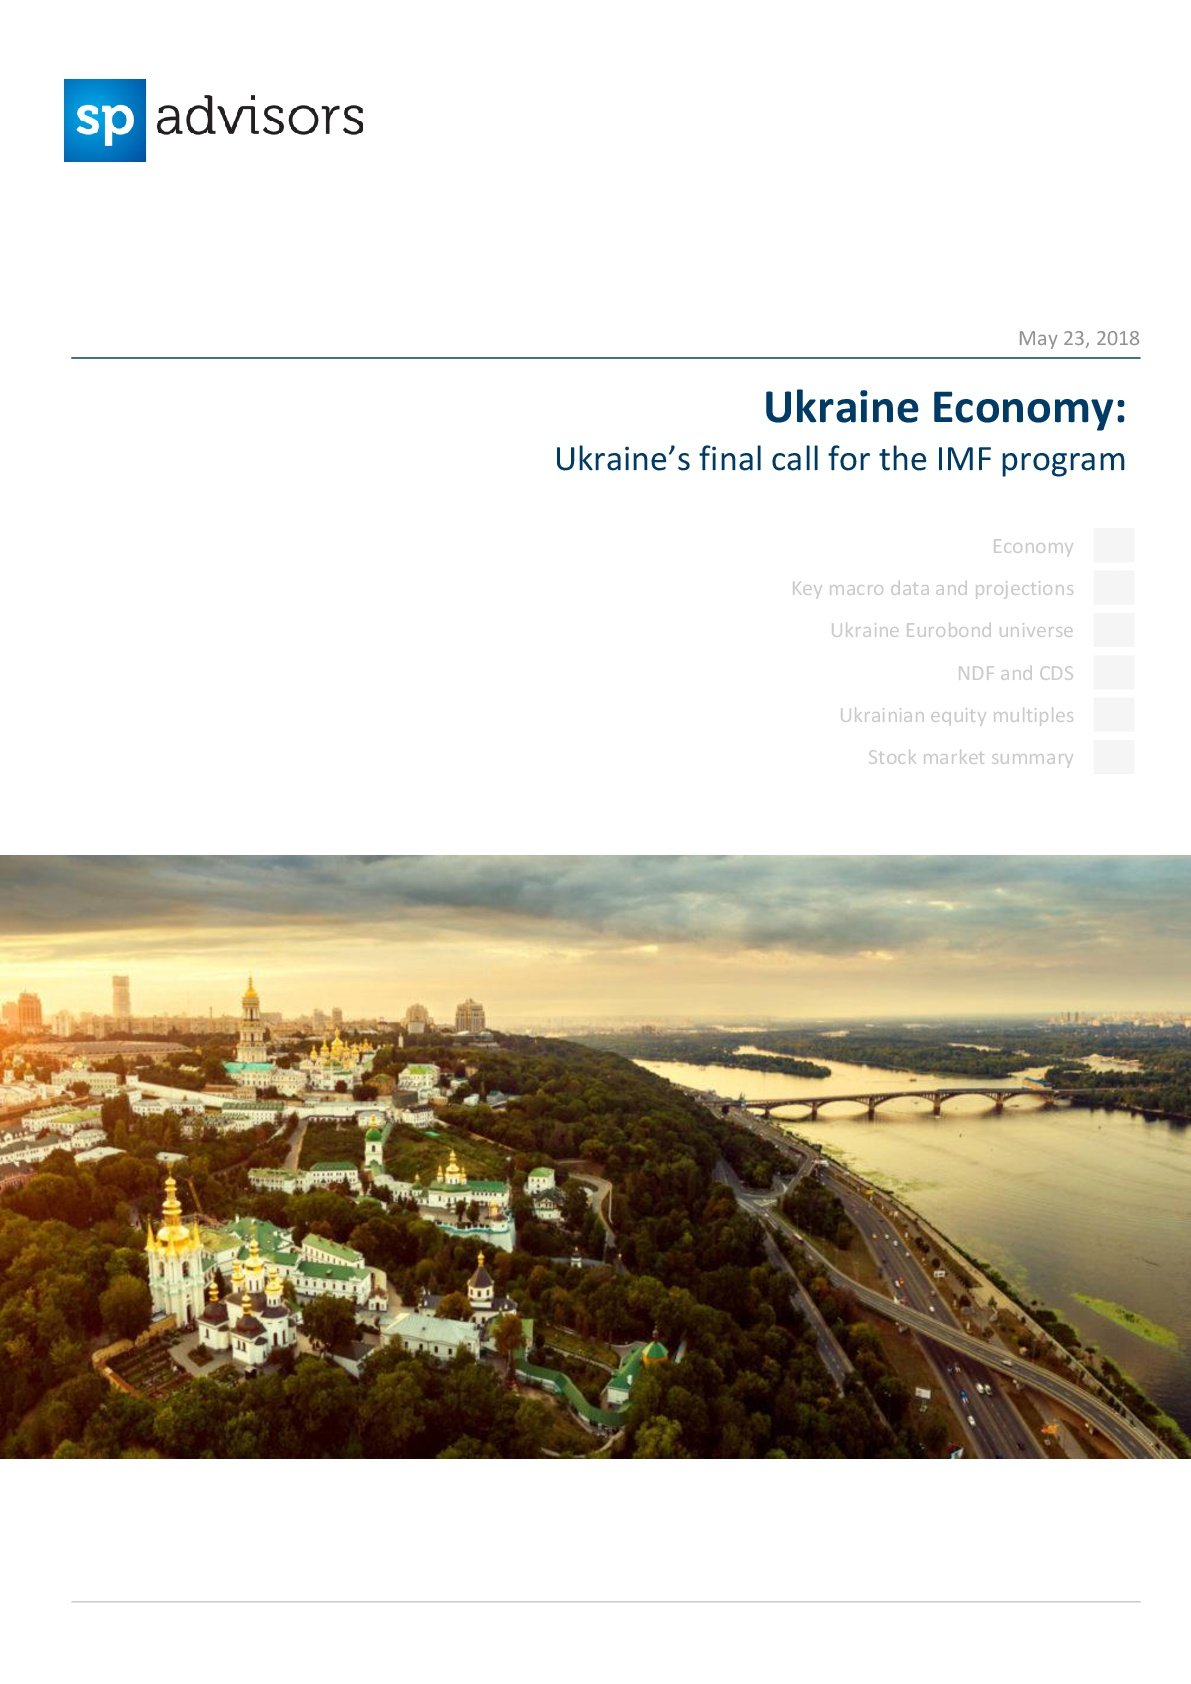 Ukraine Economy: Ukraine's final call for the IMF program. May 23, 2018